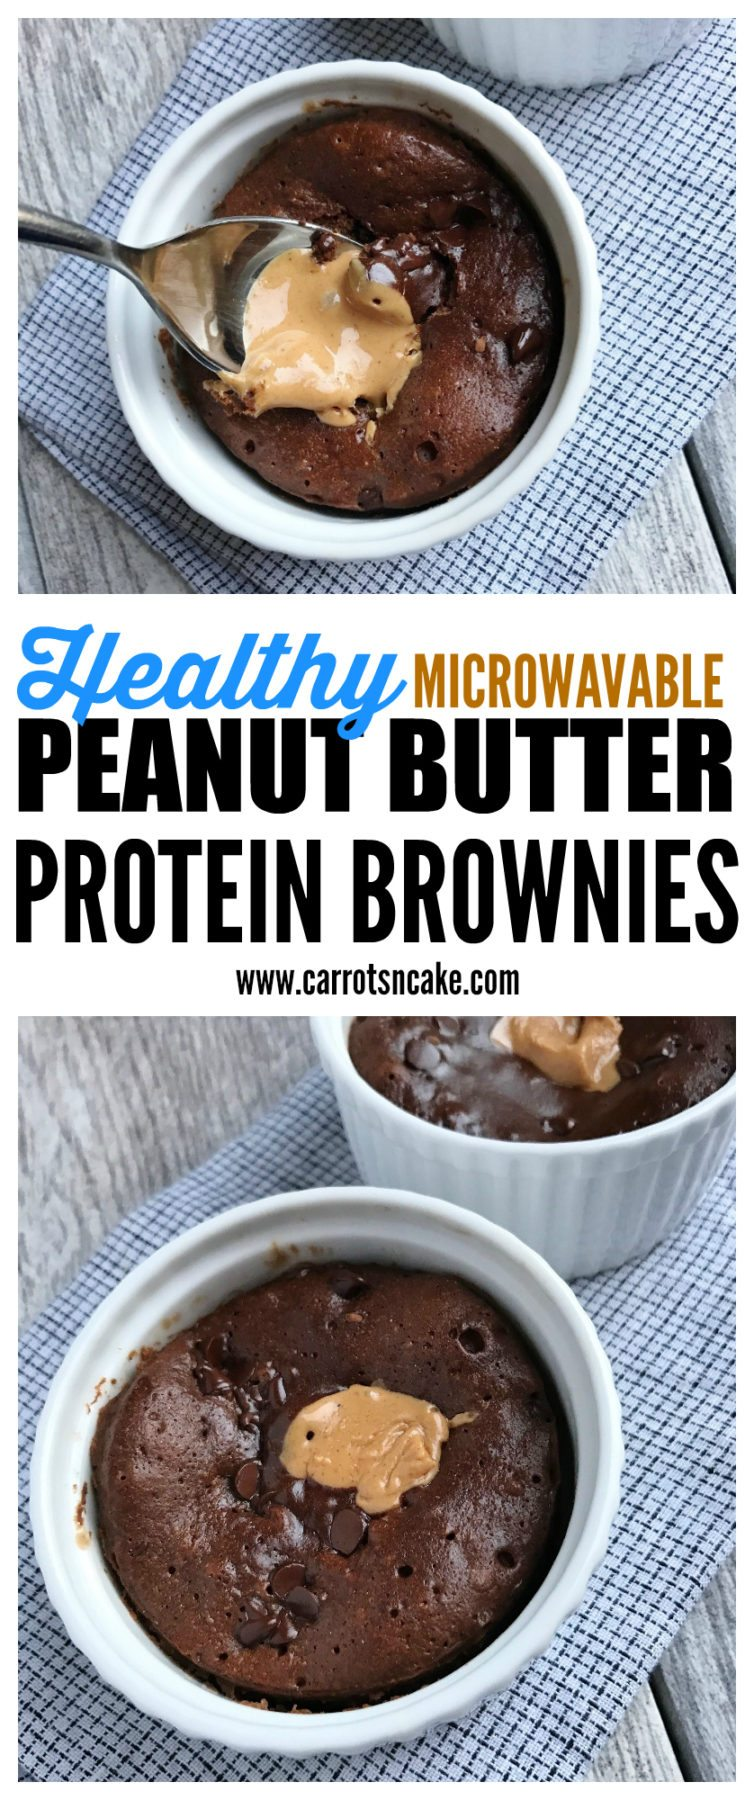 microwavable-peanut-butter-protein-brownies